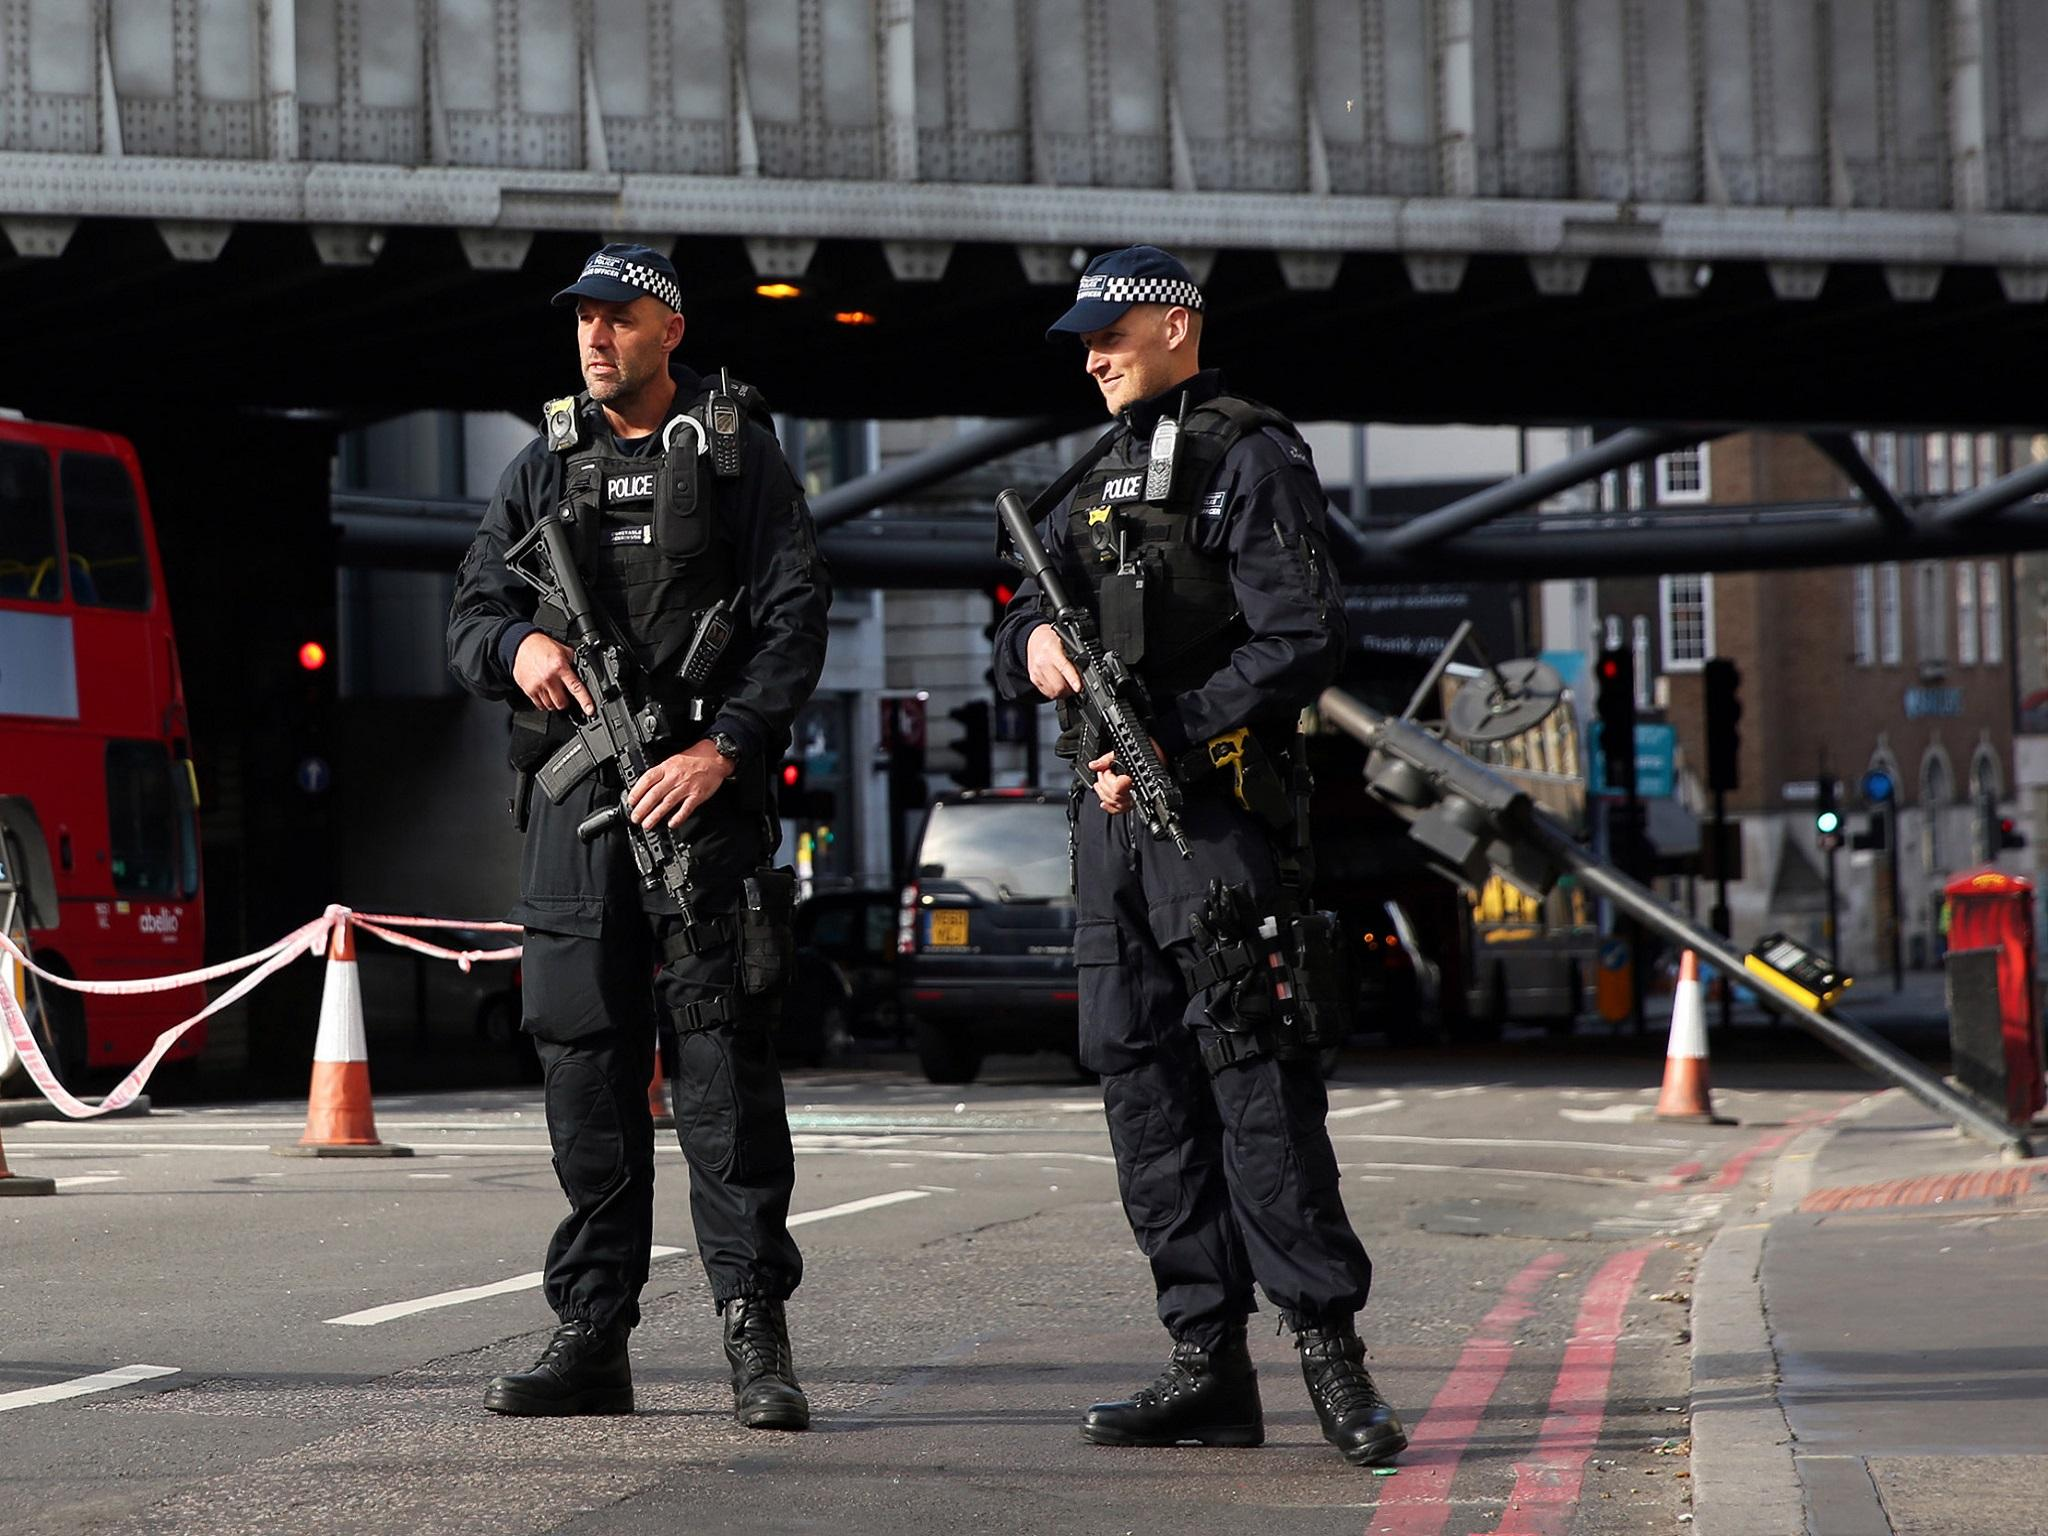 Armed police this Morning in the UK (Video) 1